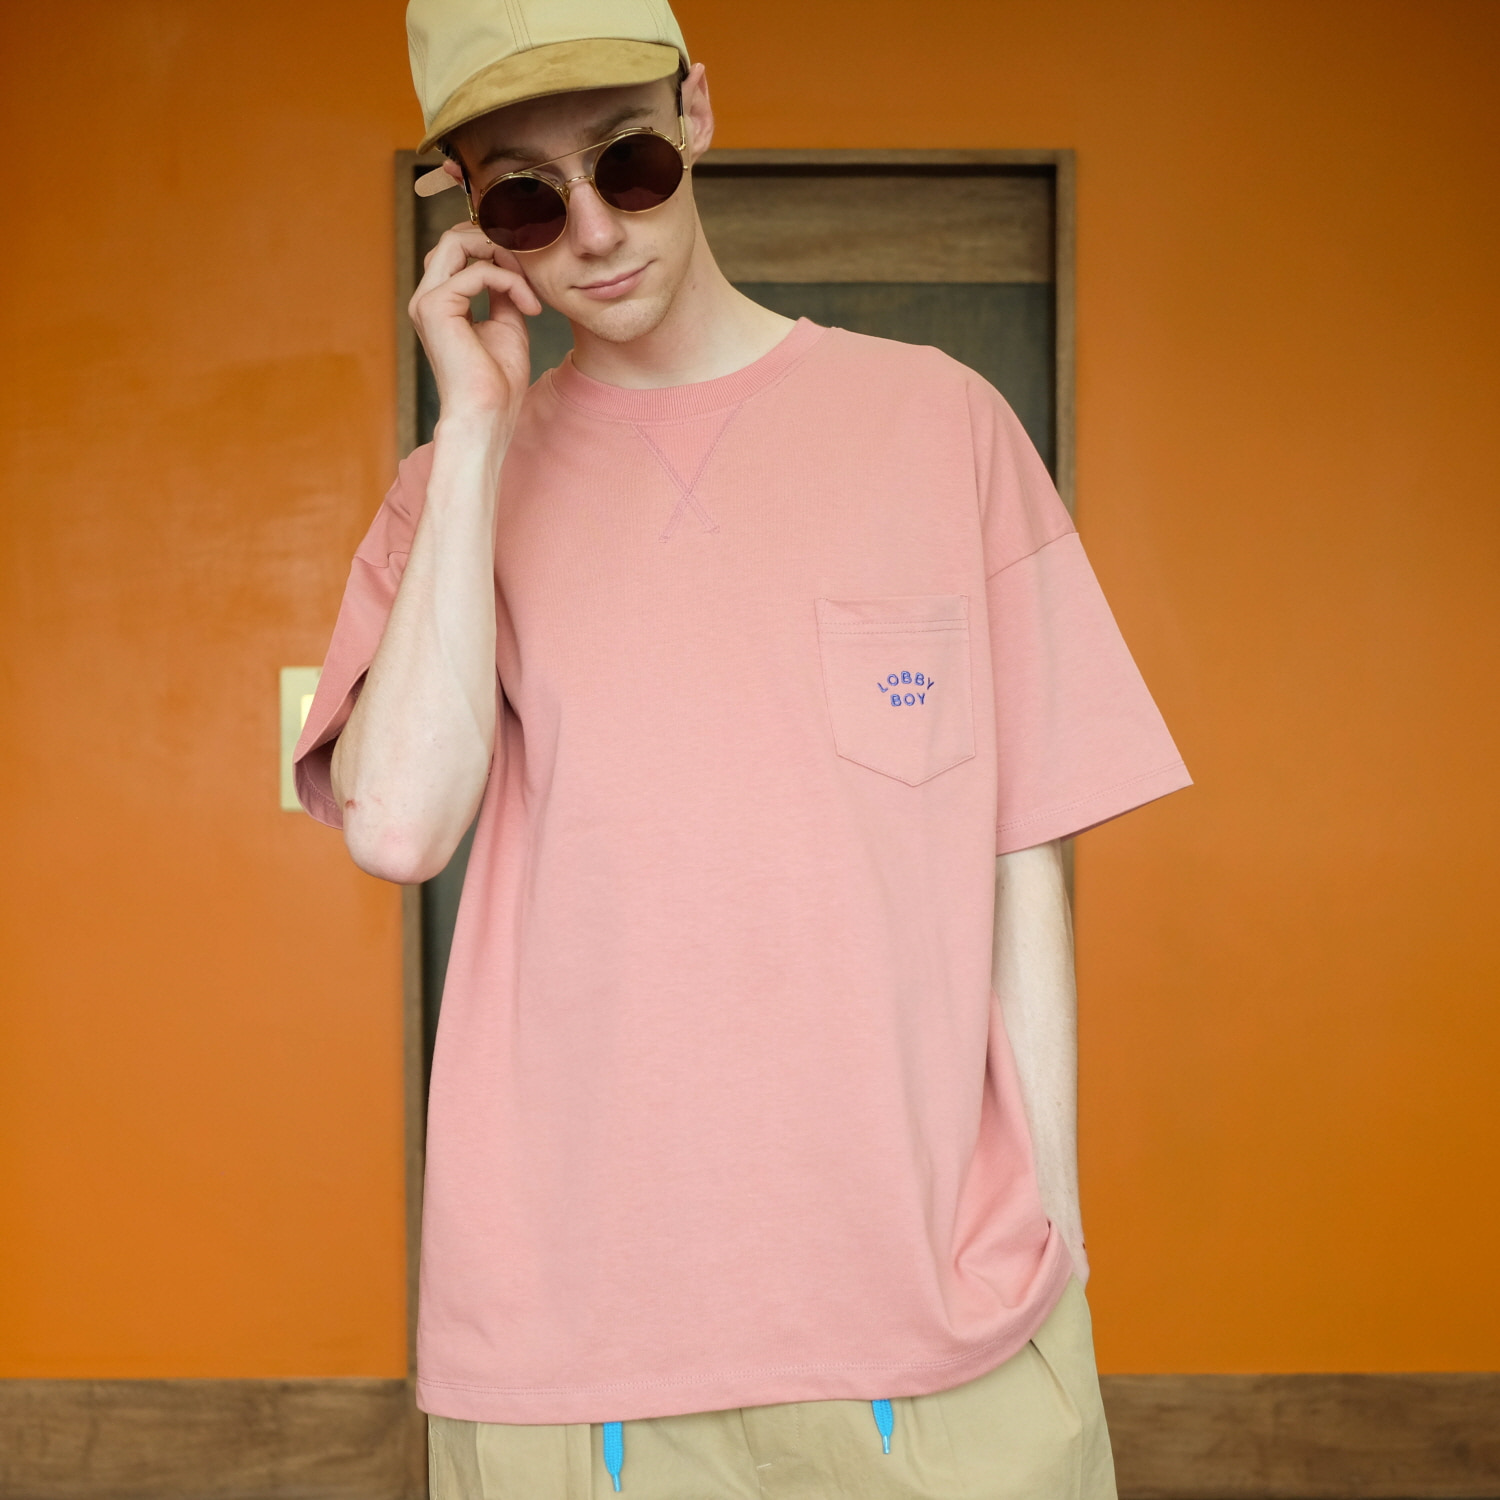 데일리인 Daily inn LOBBY BOY WIDE TEE WITH POCKET (Double Weight)_ROSE (HEAVY WEIGHT DOUBLE COTTON)